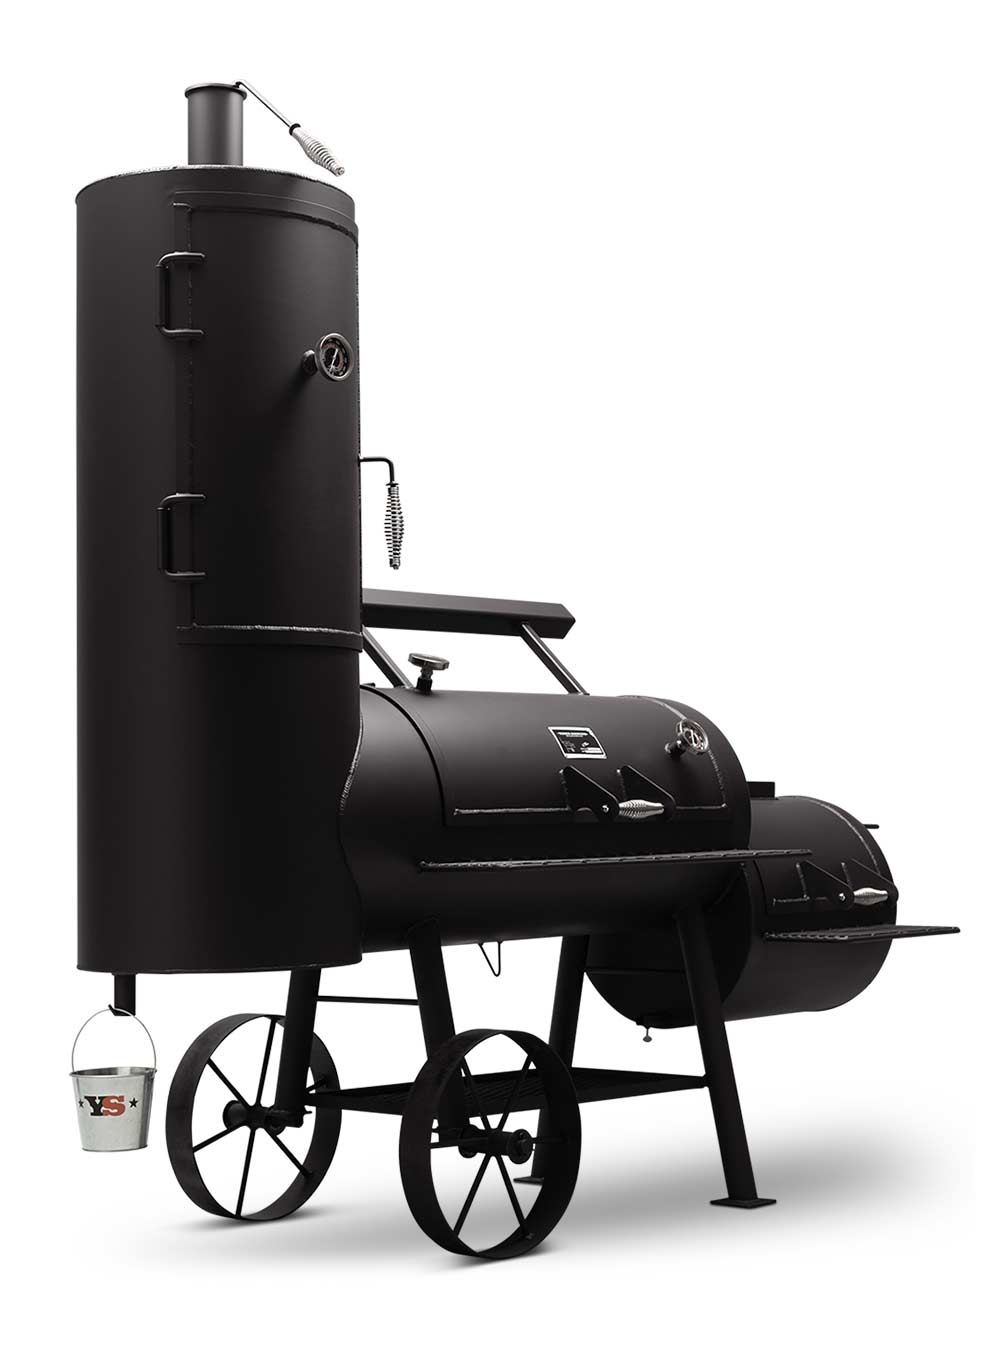 Durango 20 Vertical Smoker